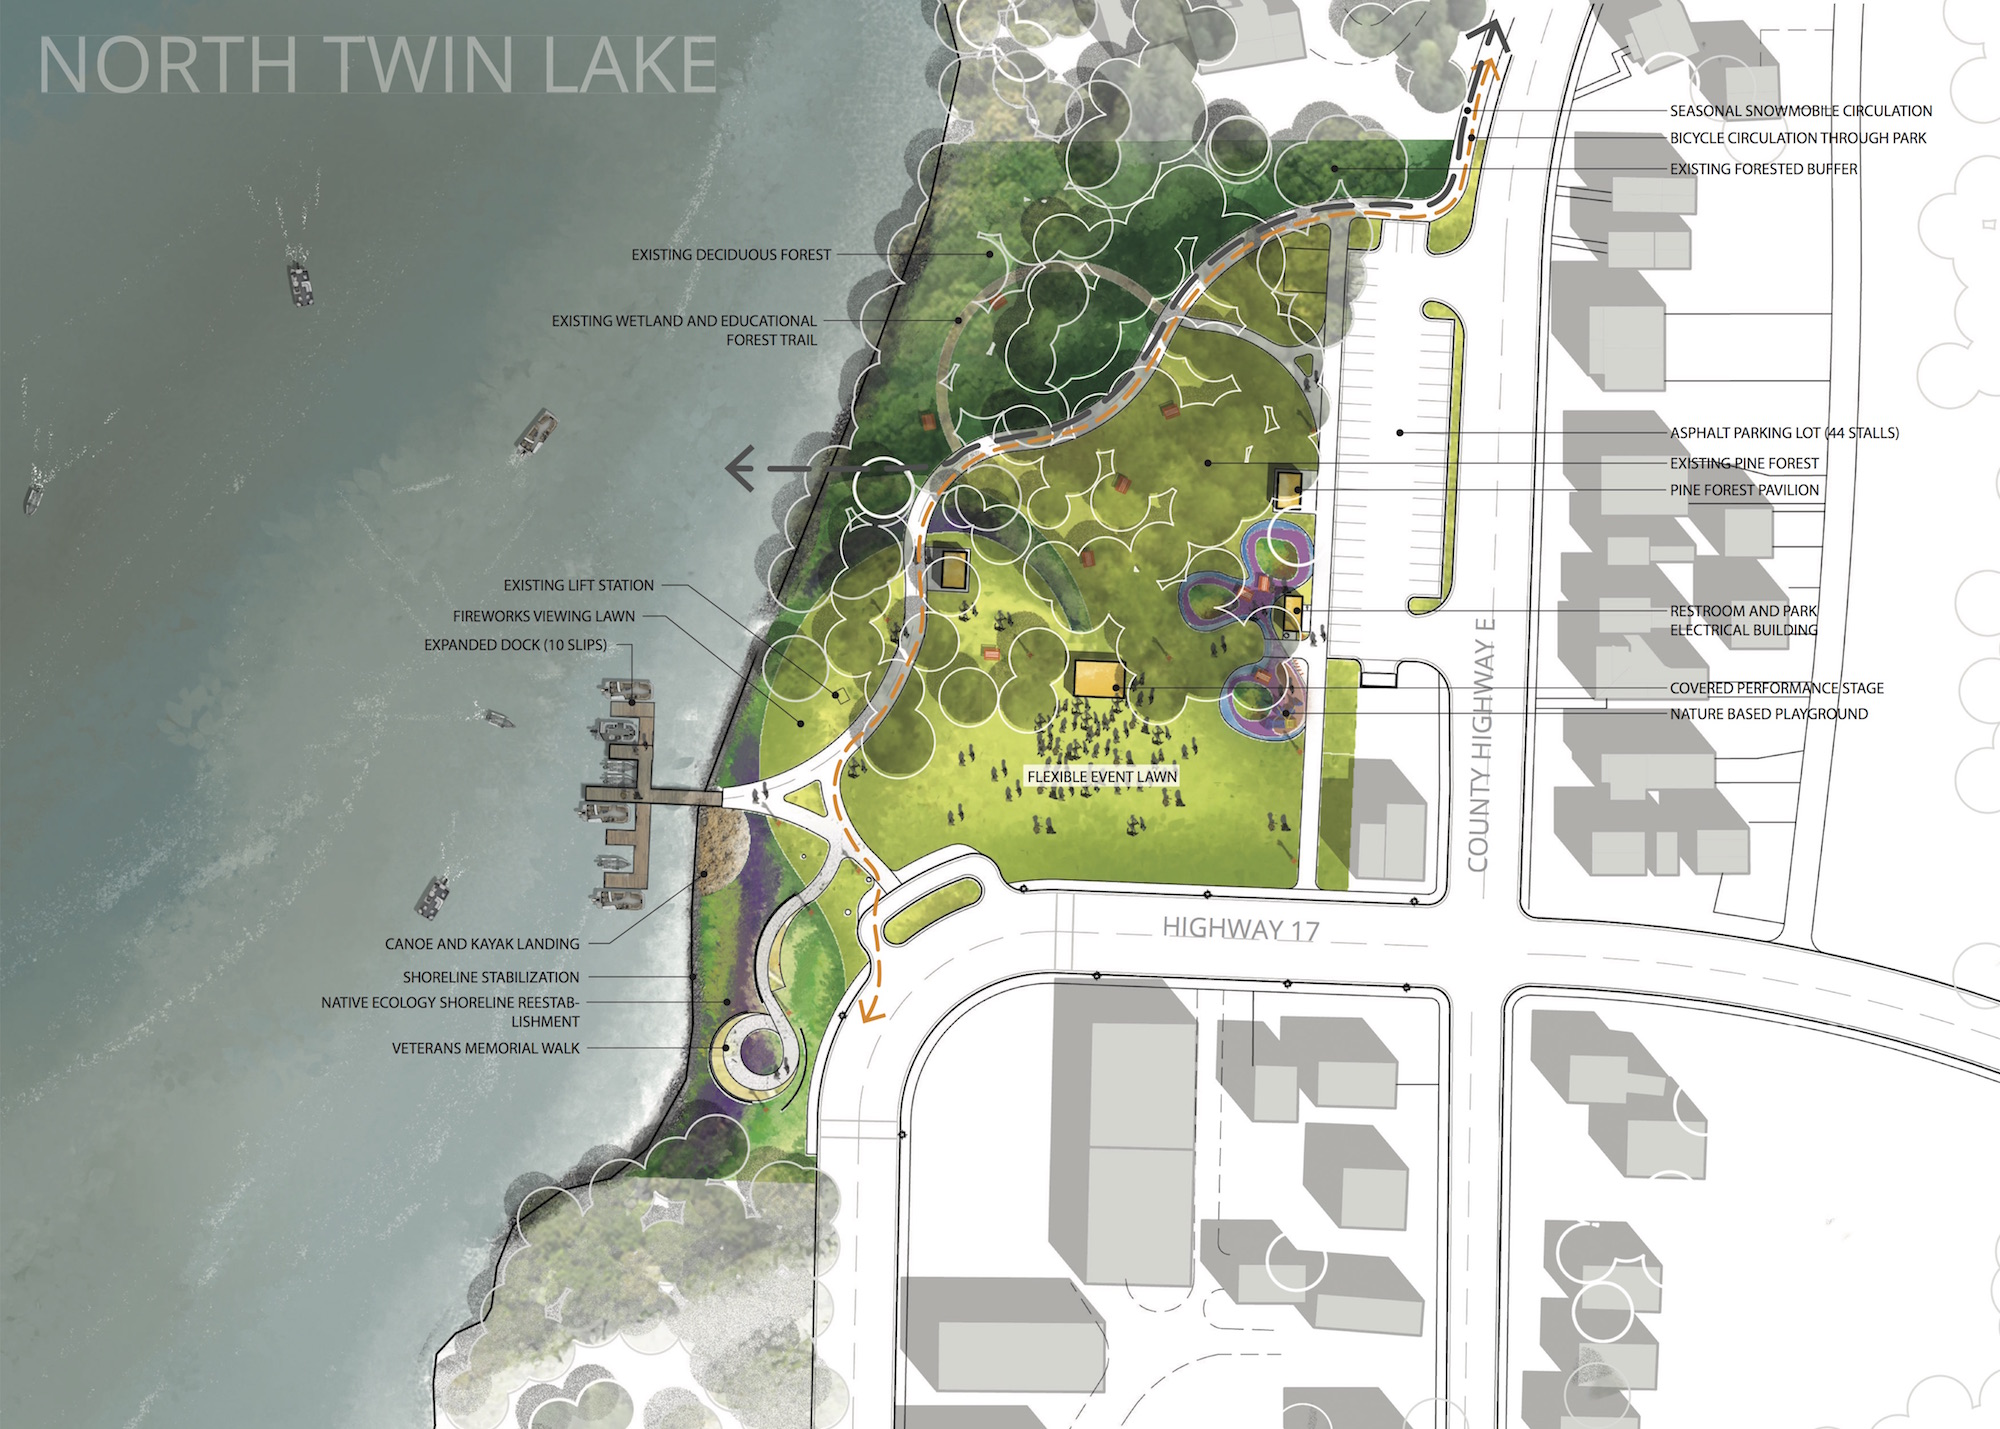 Park plans posted in Phelps